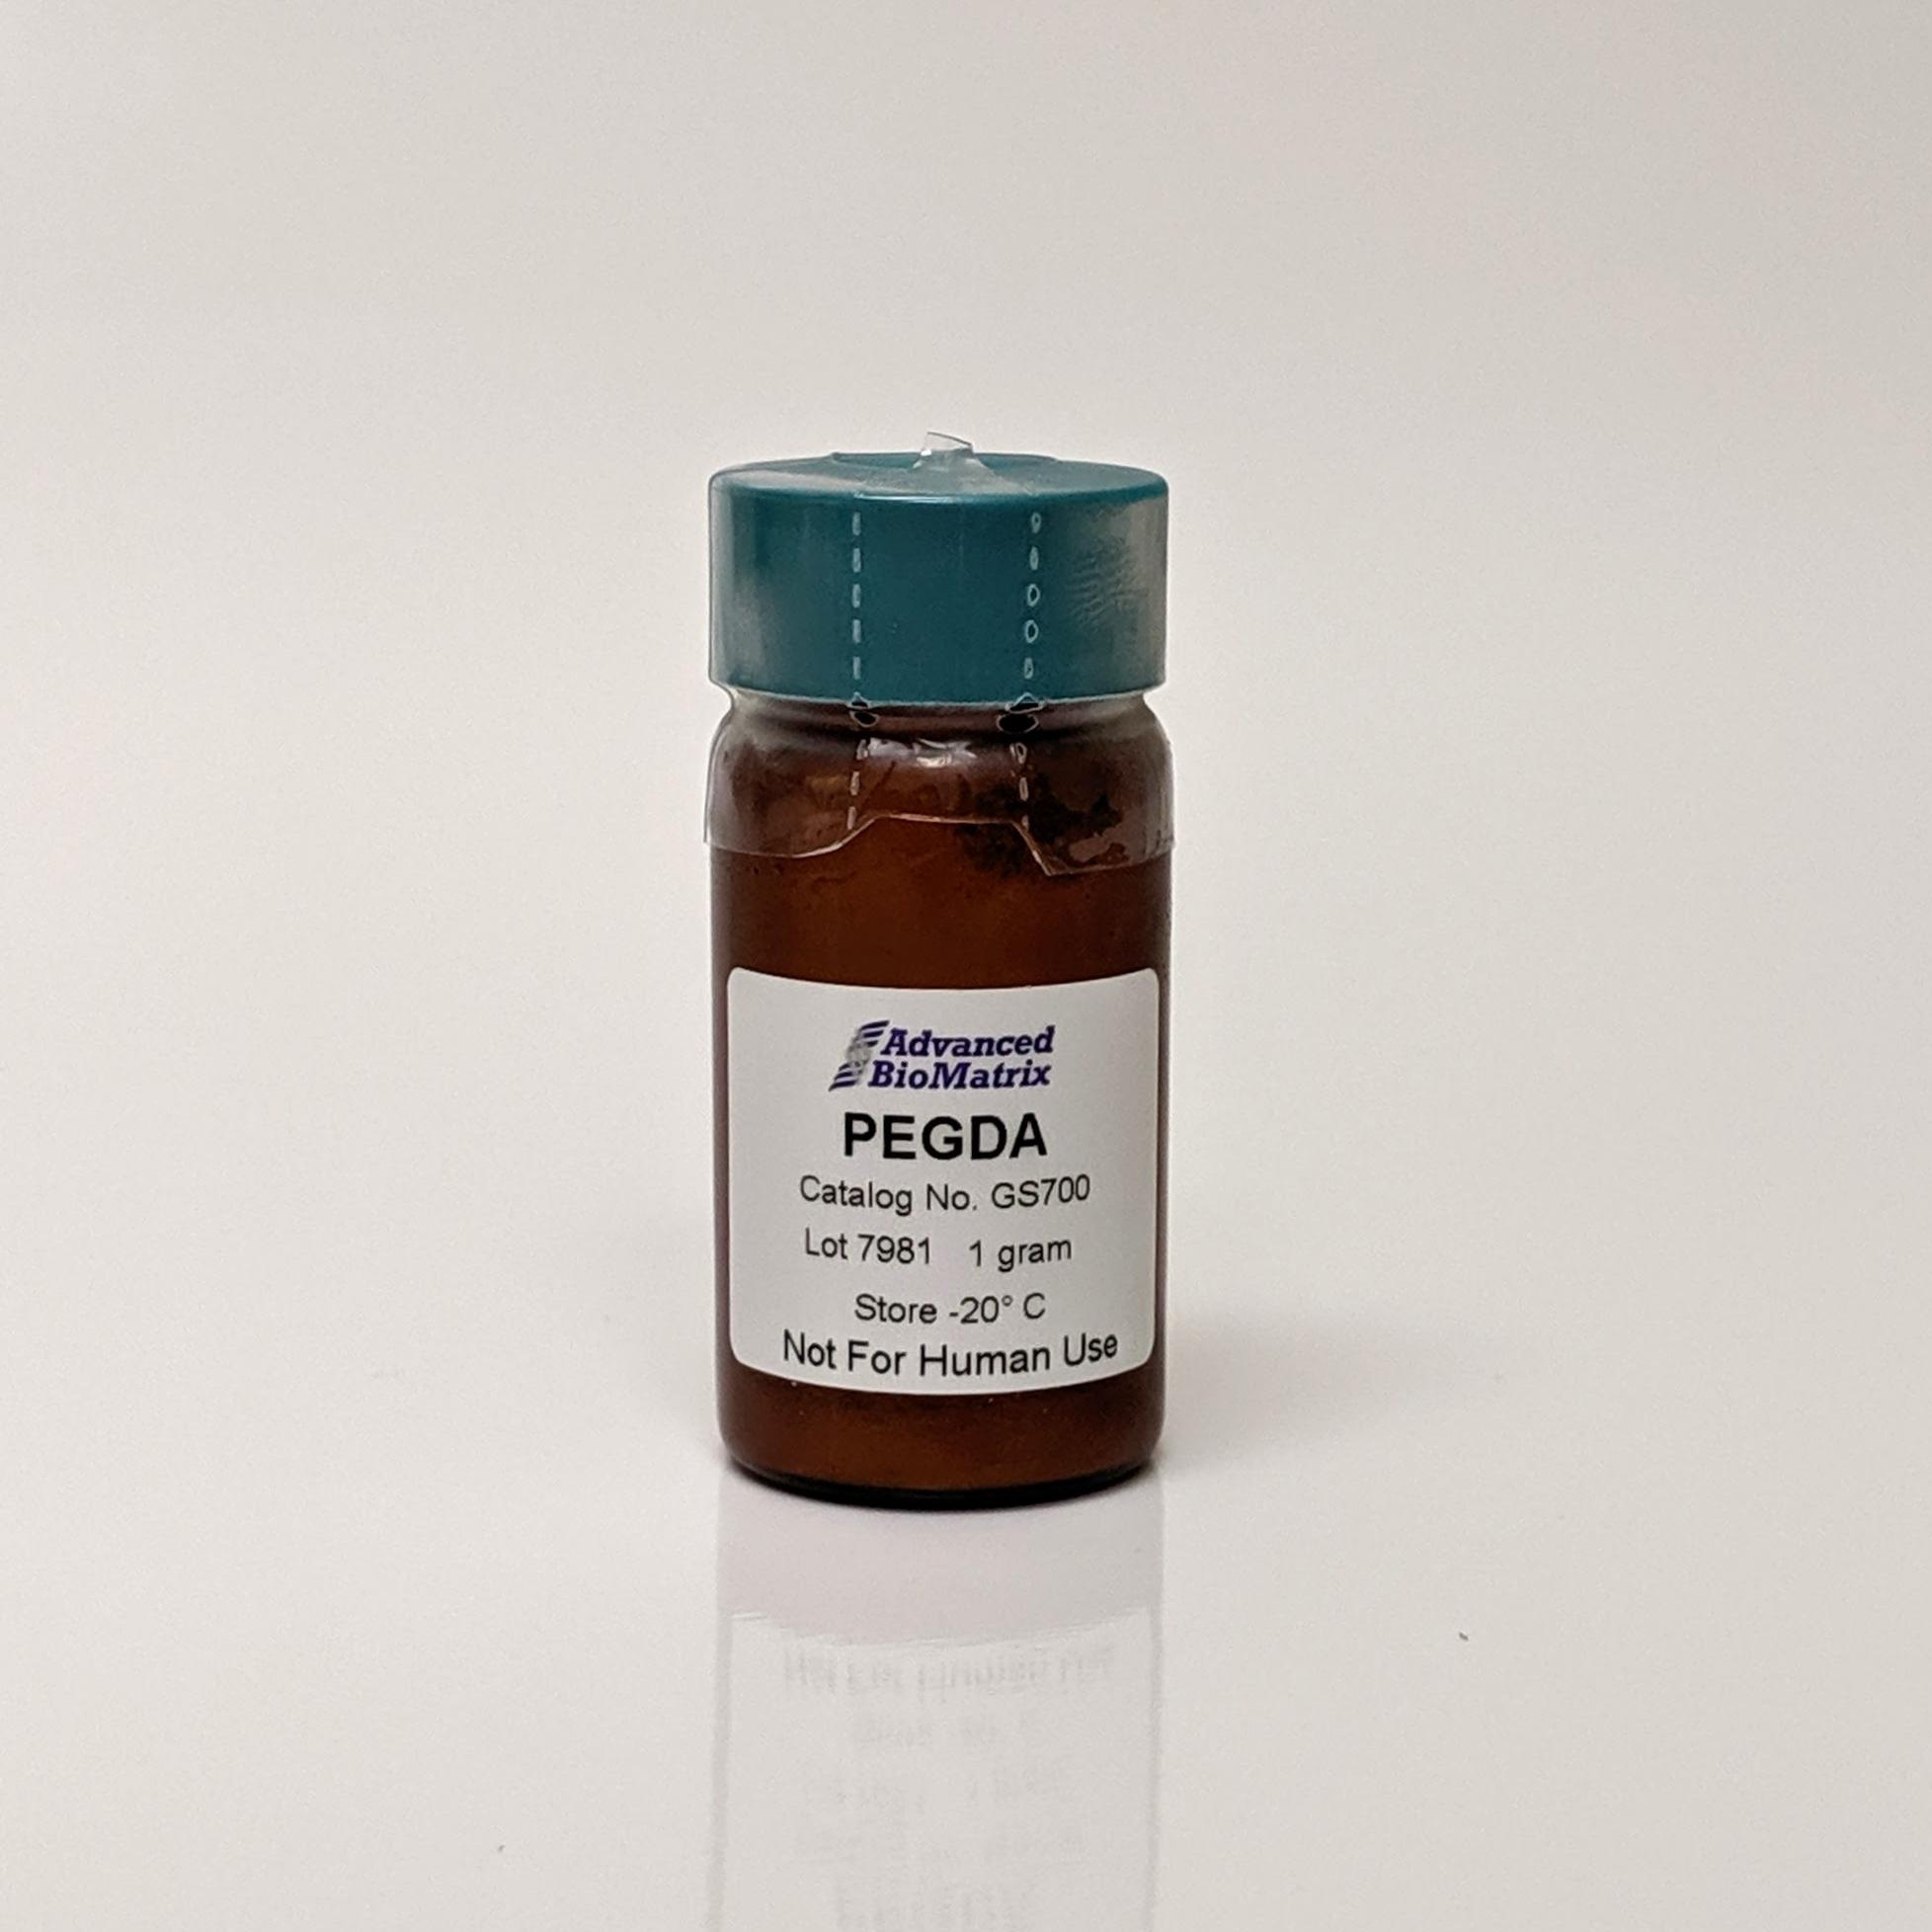 PEGDA 3500 mw powder from advanced biomatrix